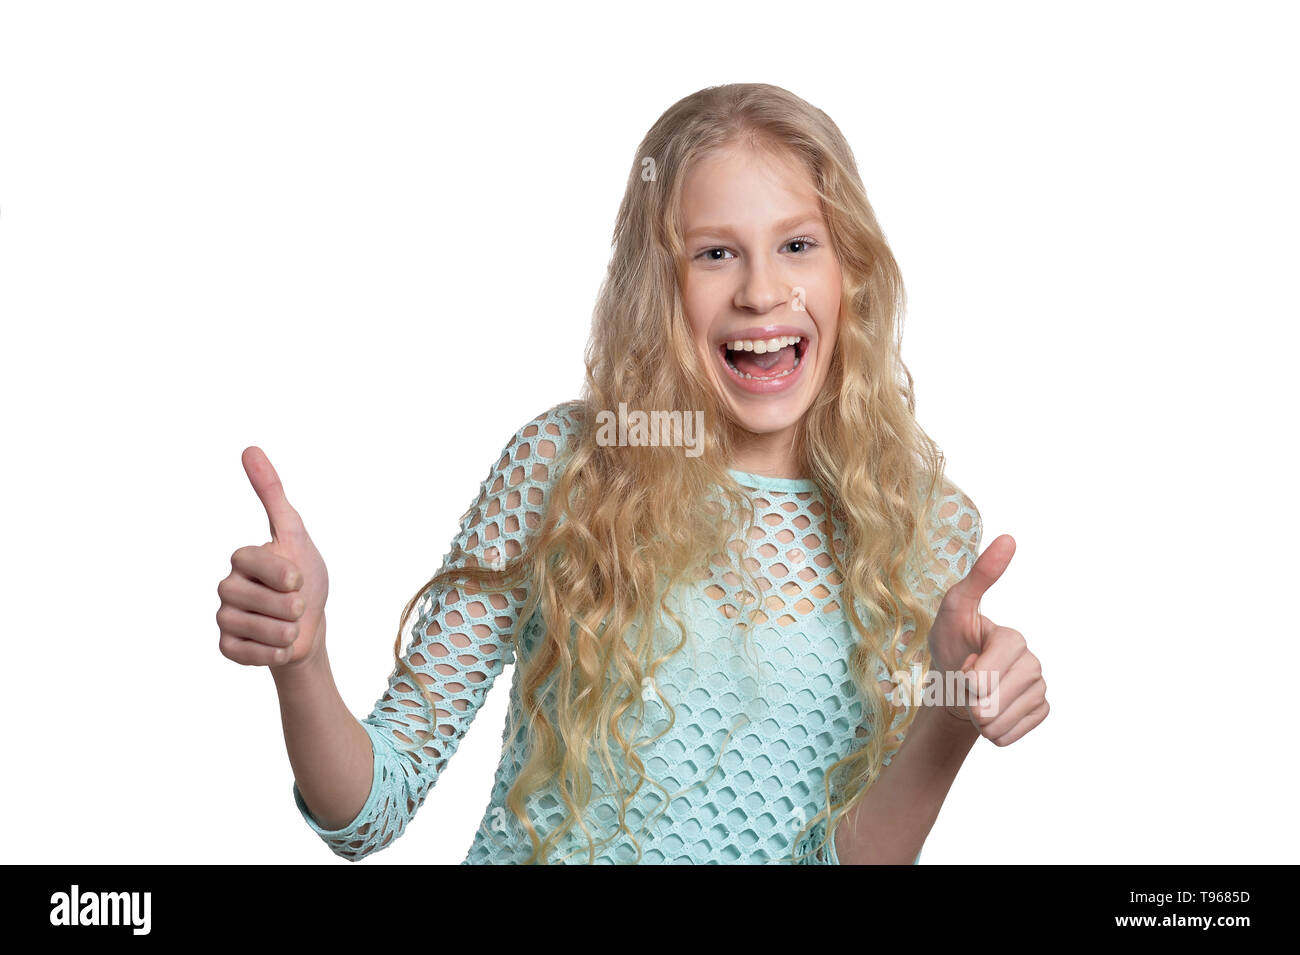 Portrait of cute blonde teen girl showing thumbs up isolated on white background - Stock Image